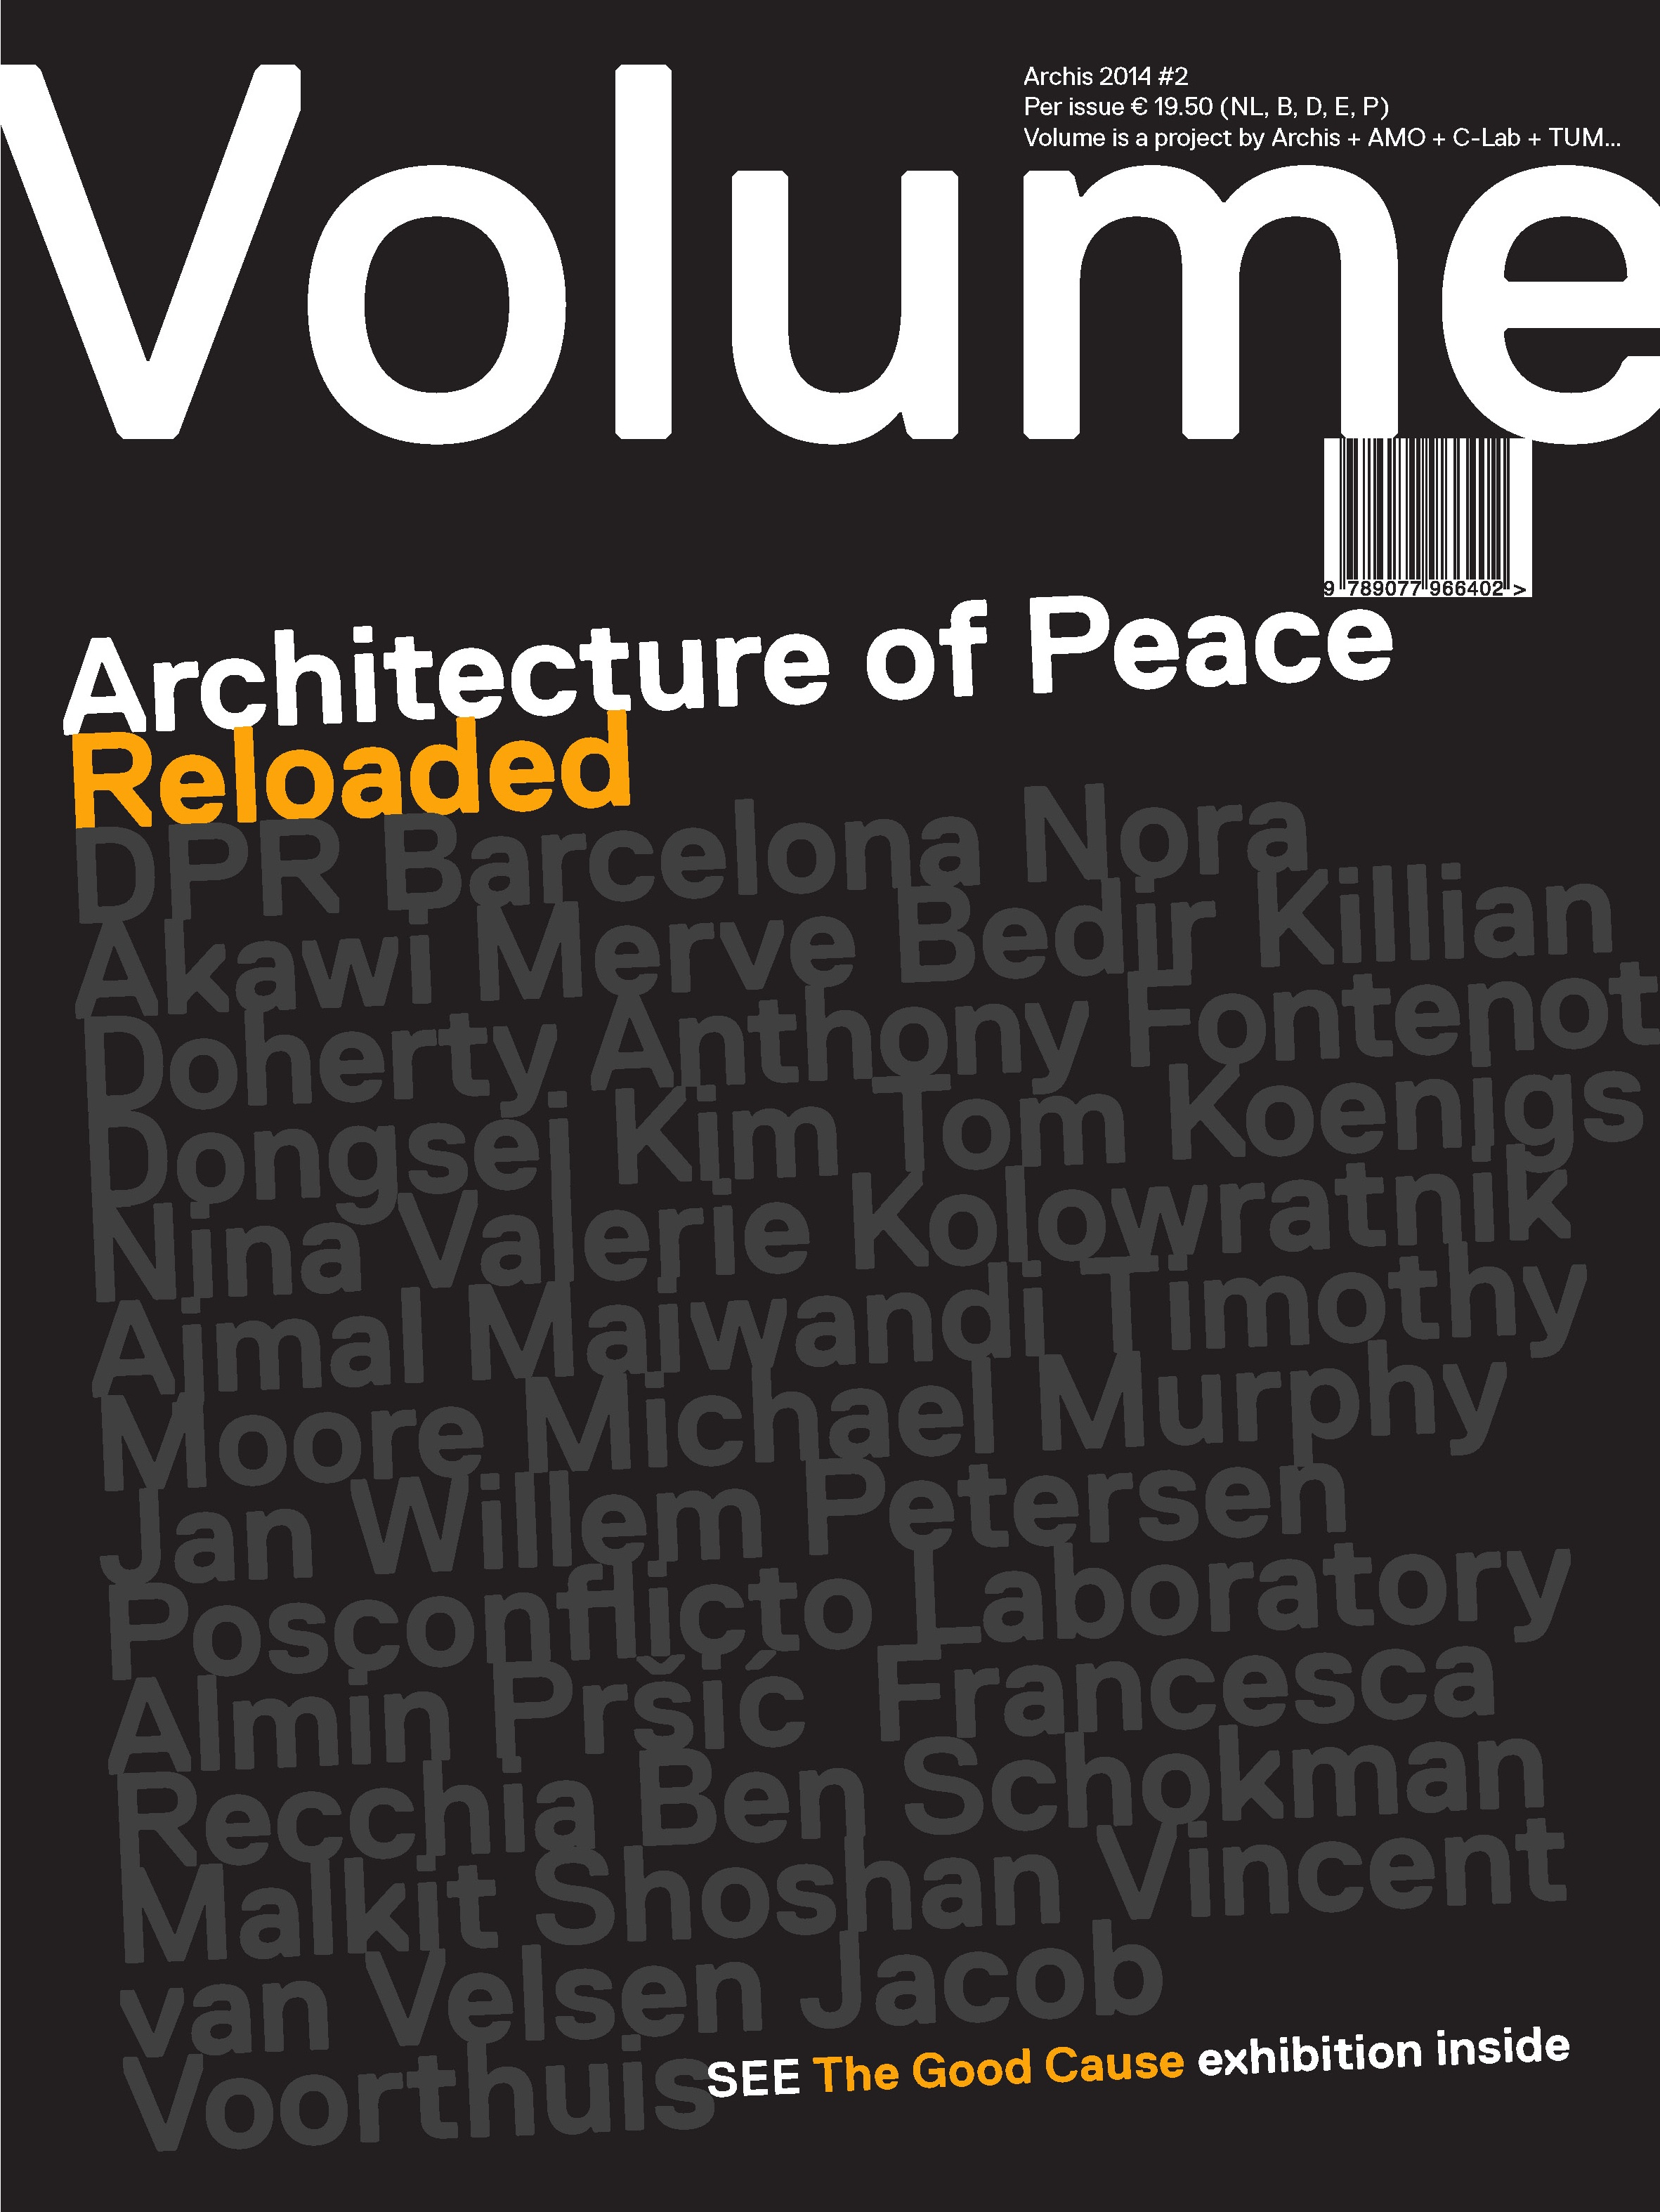 Volume #40: Architecture of Peace Reloaded